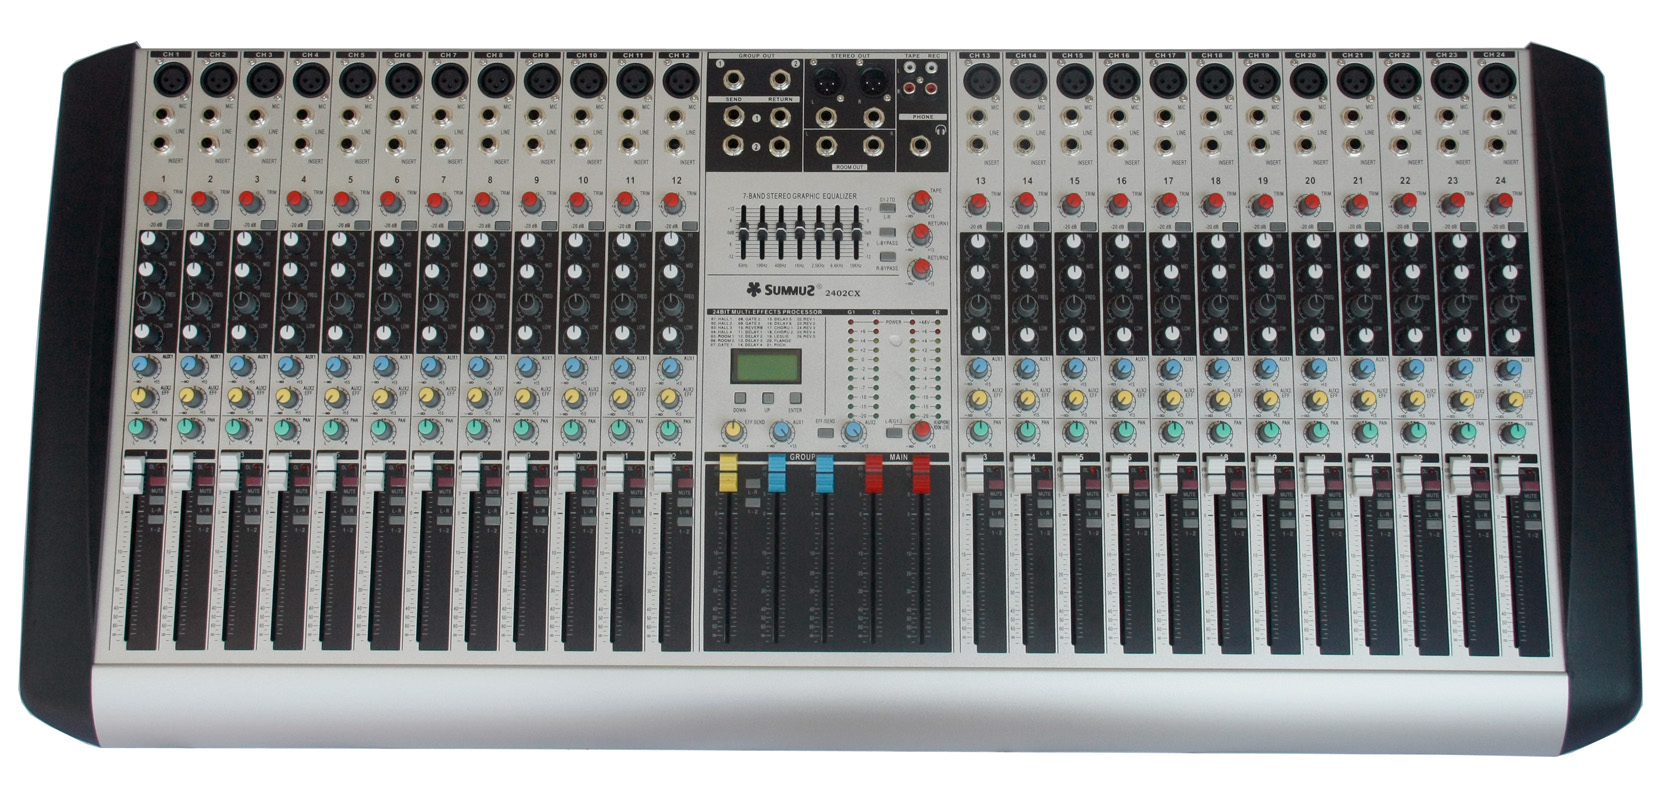 [The goods stop production and no stock]Summuz/Senma 2402CX Professional 24-Channel DSP Digital Effect Two-Marshalling 7-Segment Balanced Mixer